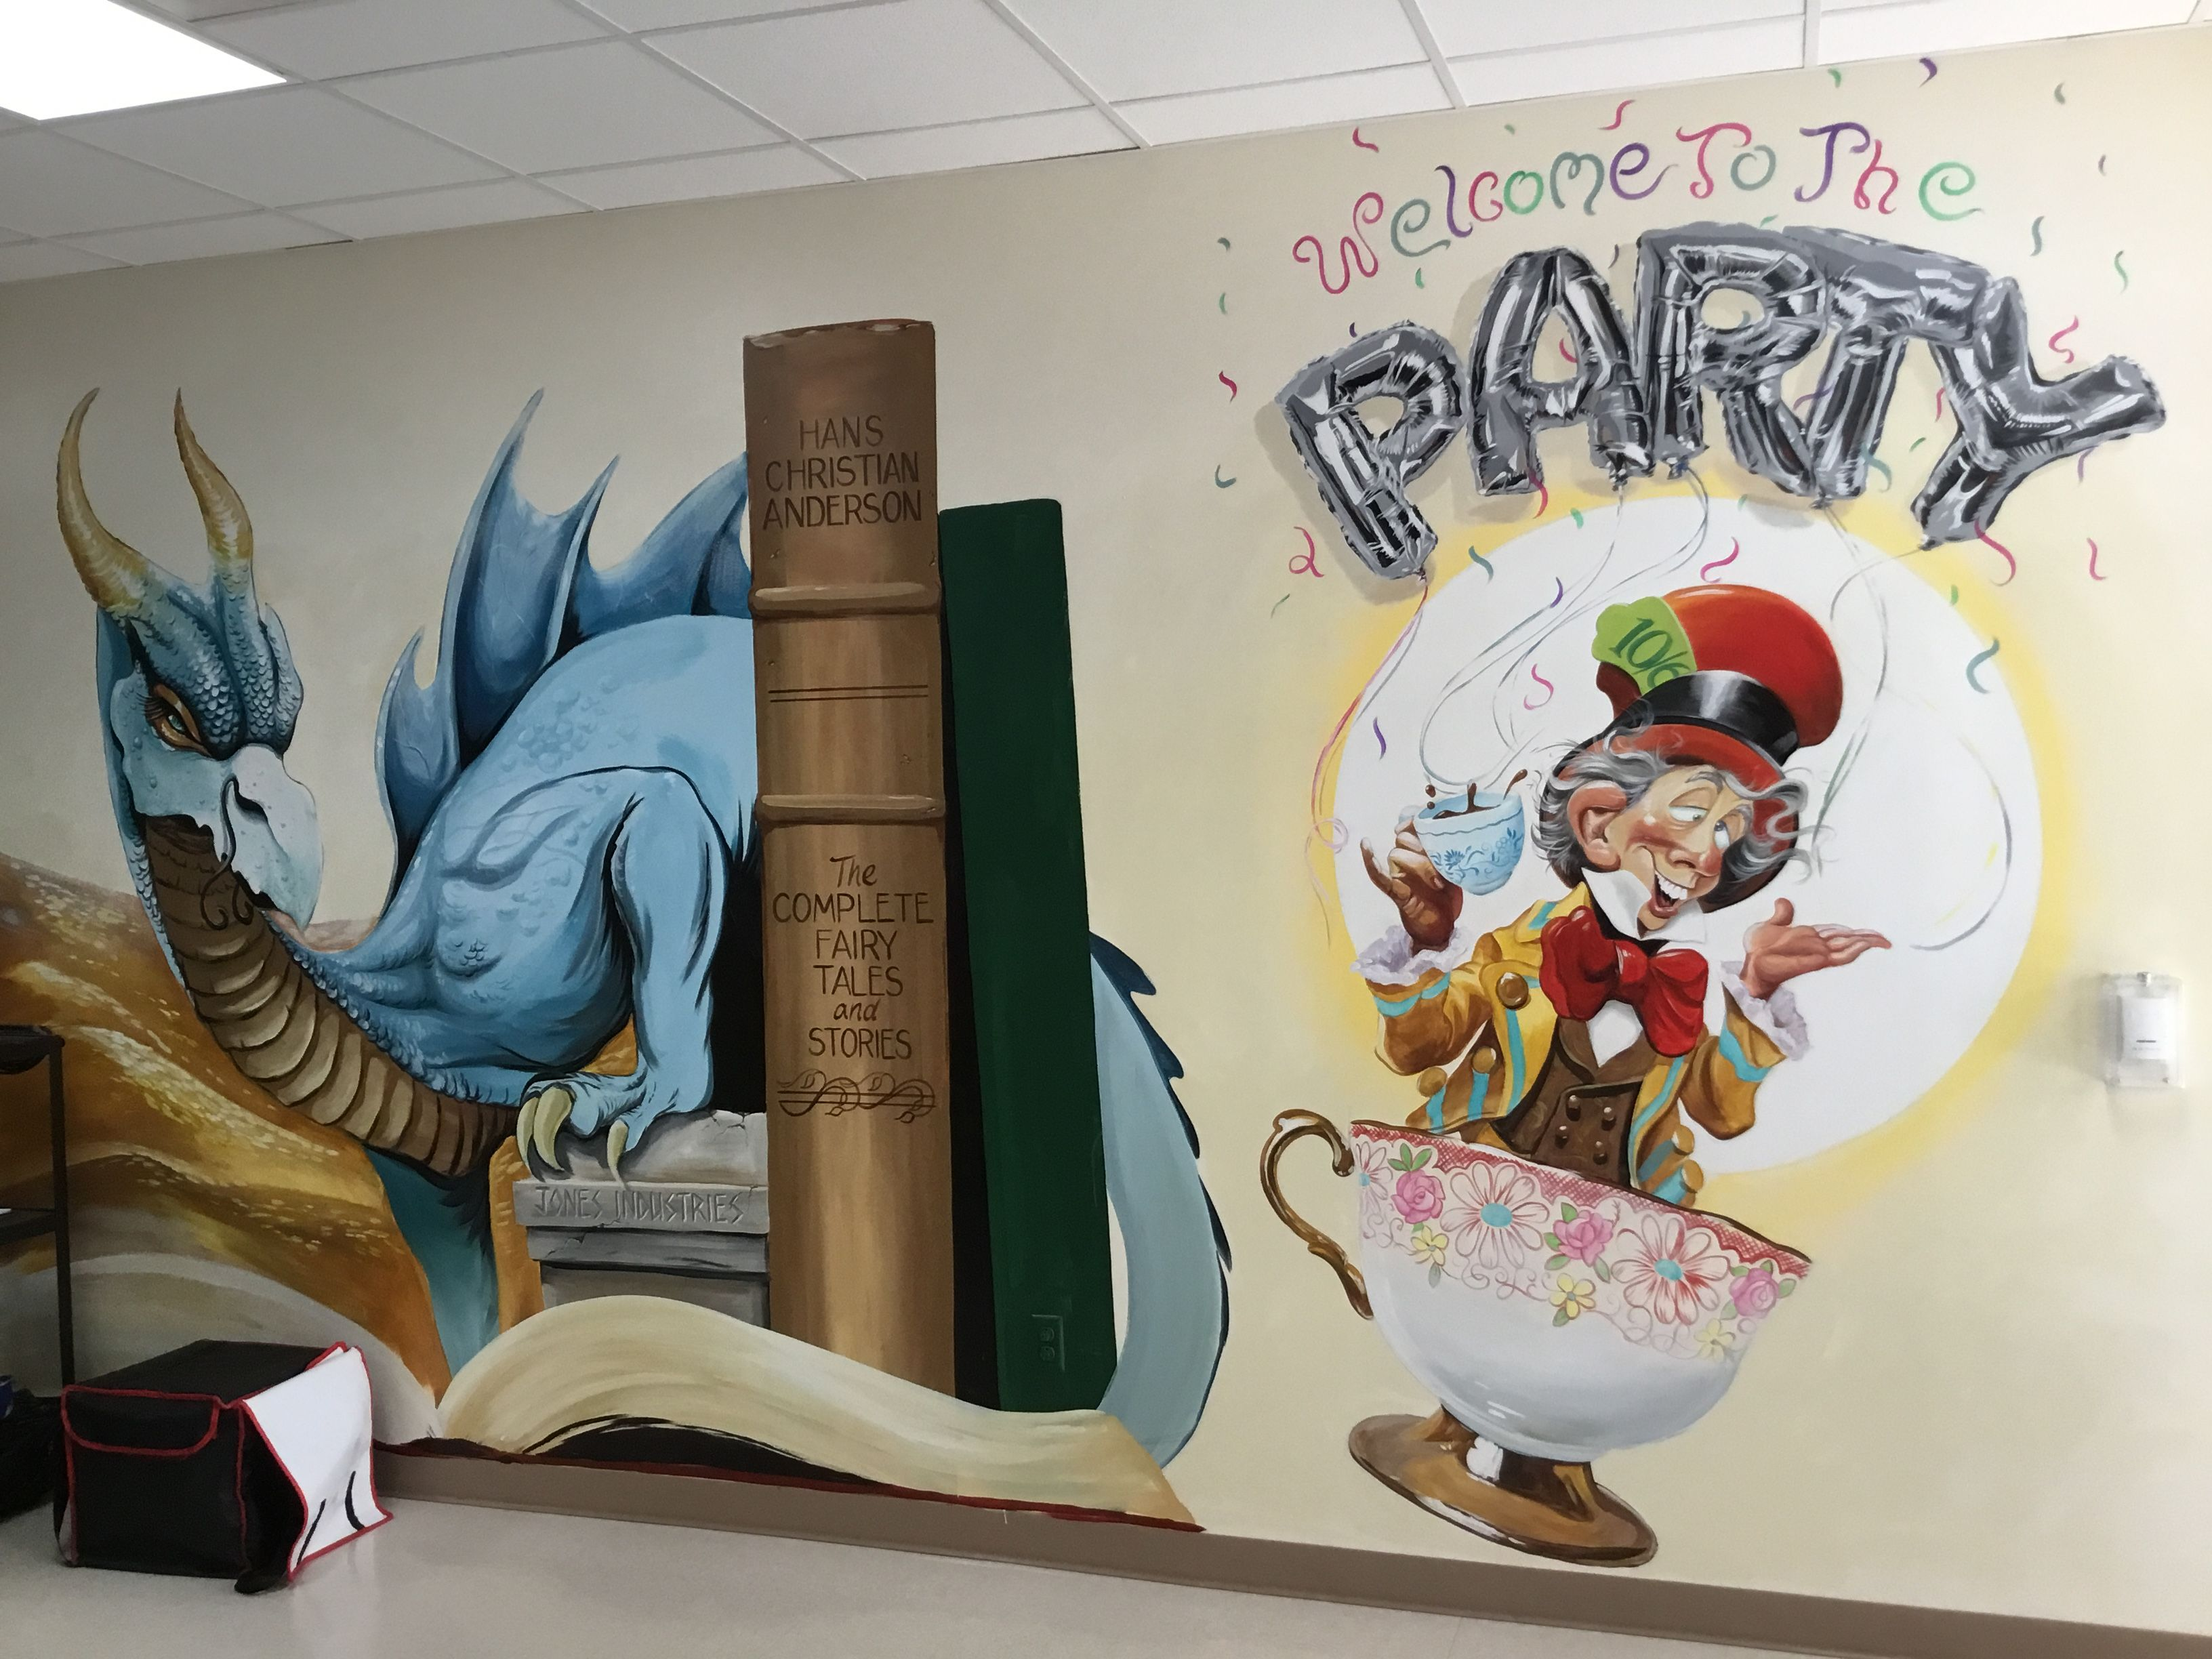 Book Themed School Mural To Promote Reading And Imagination